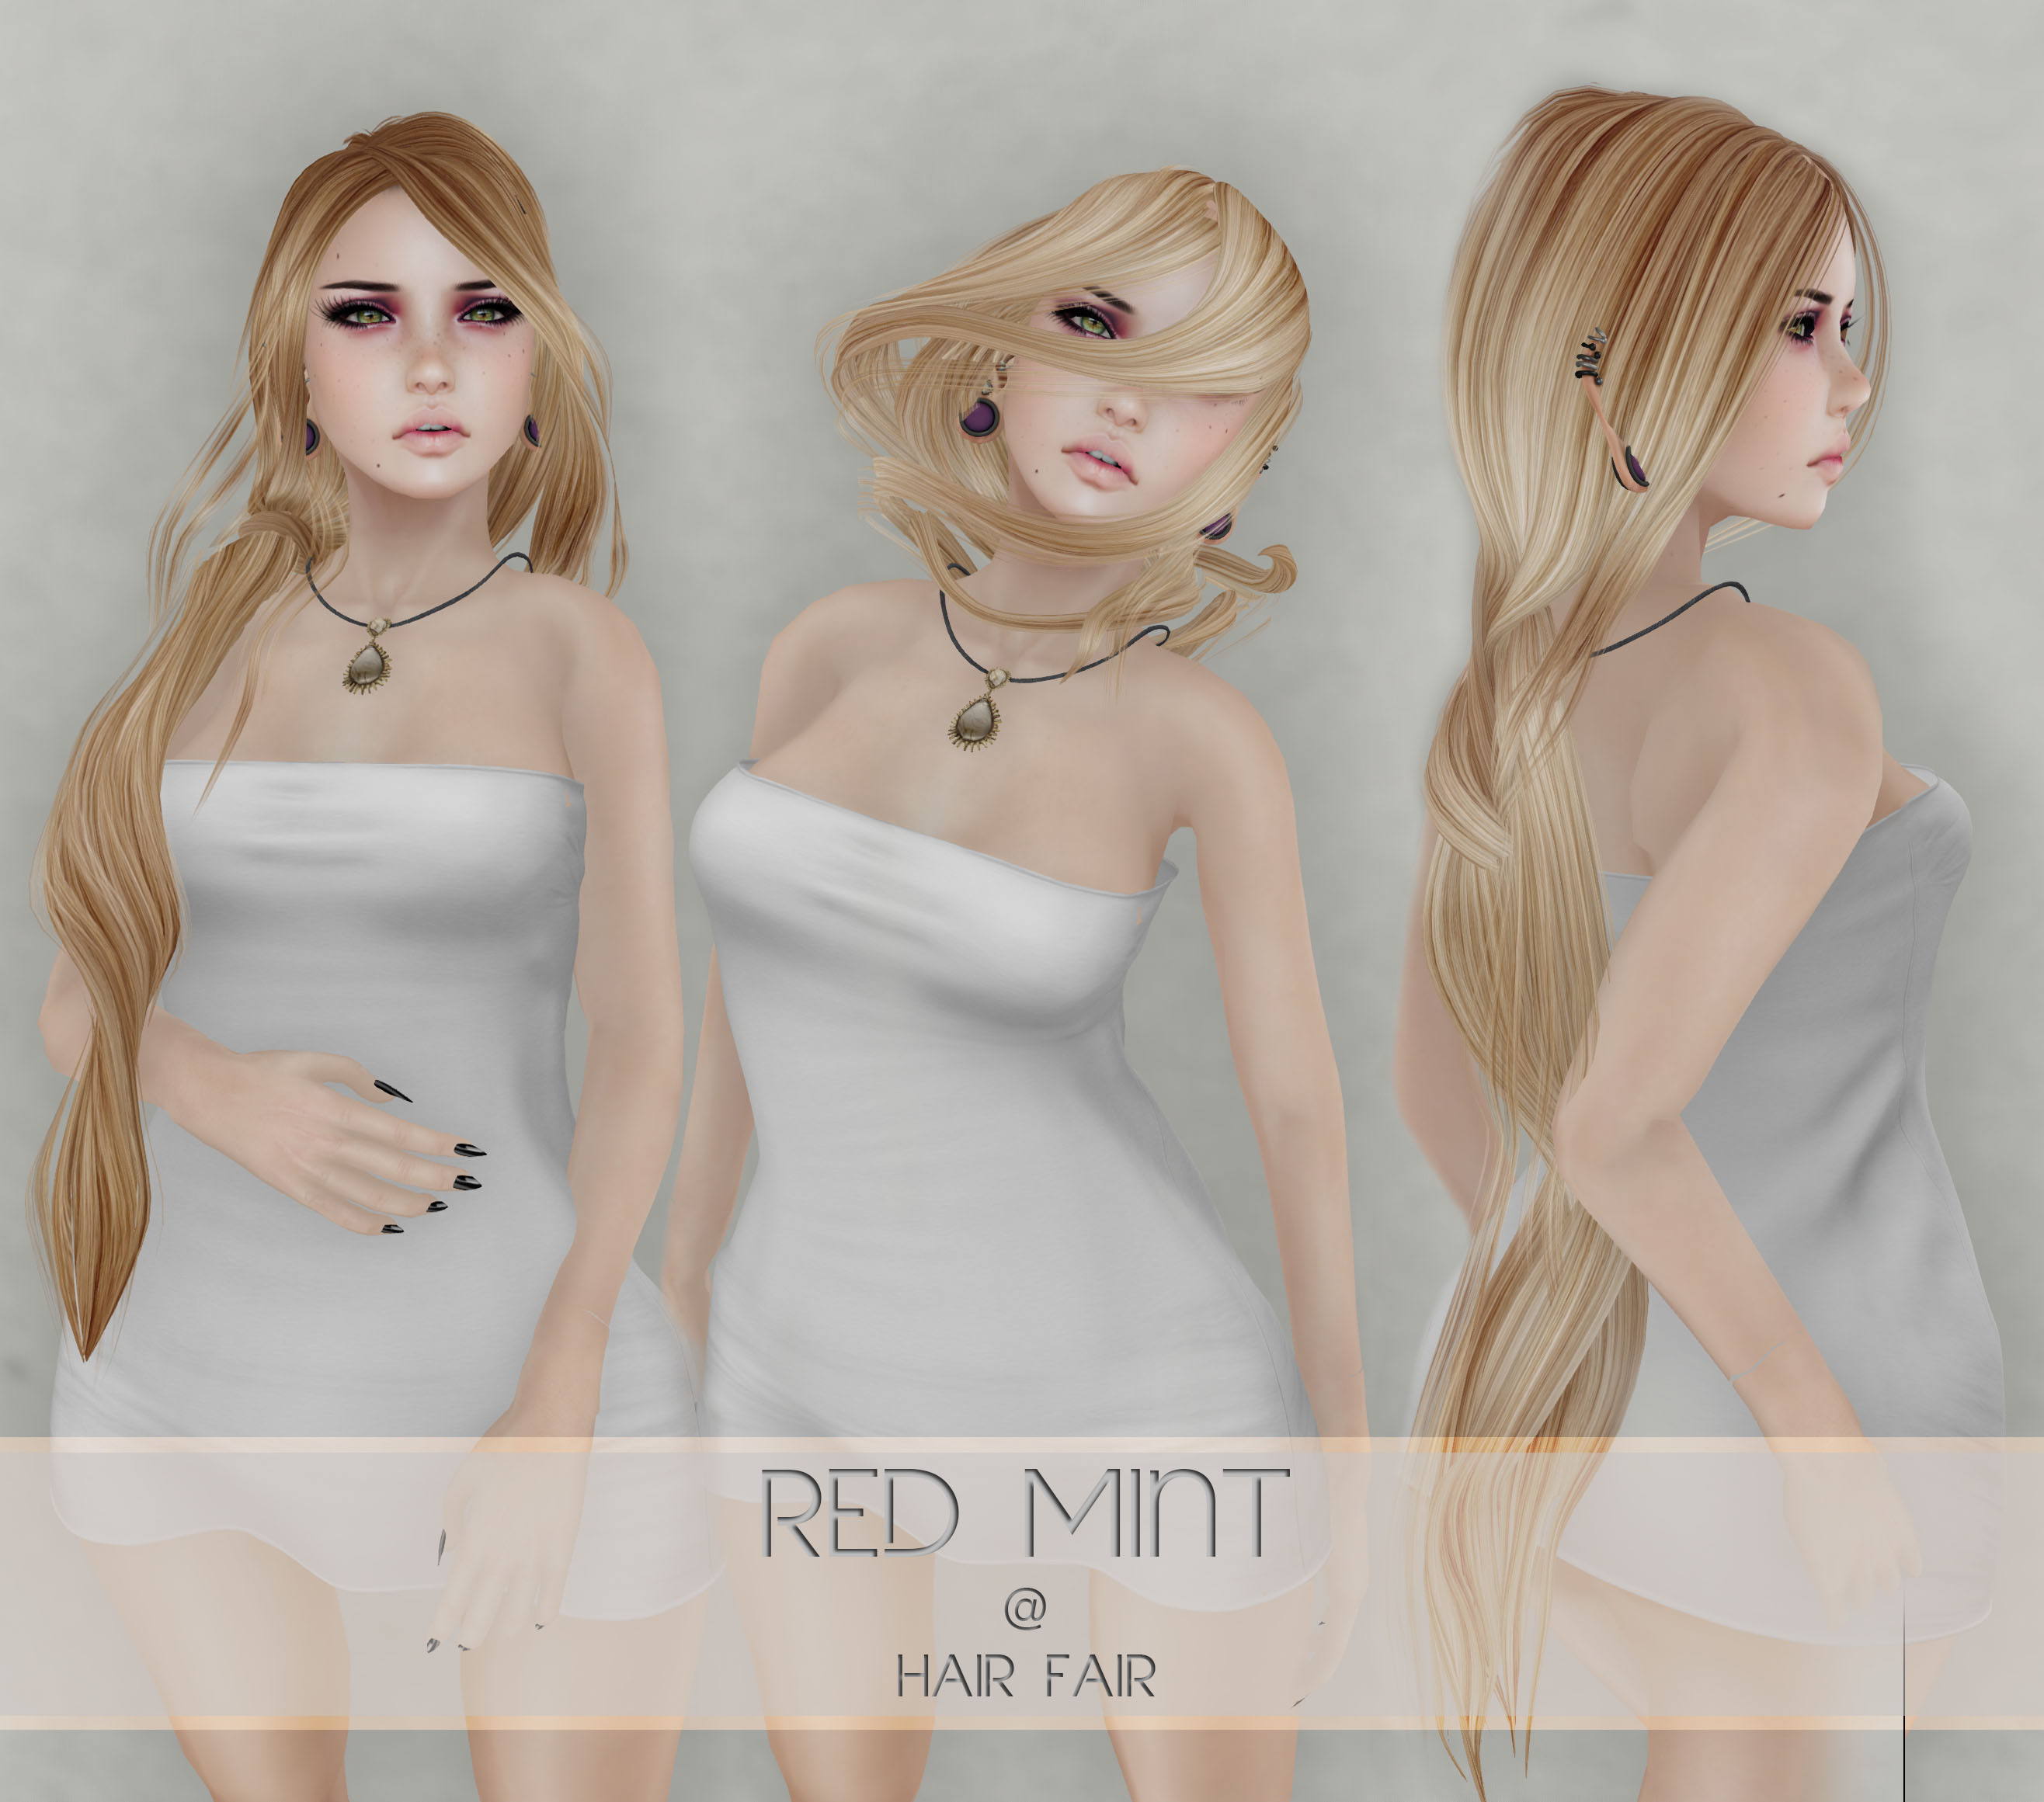 Red Mint@Hair Fair